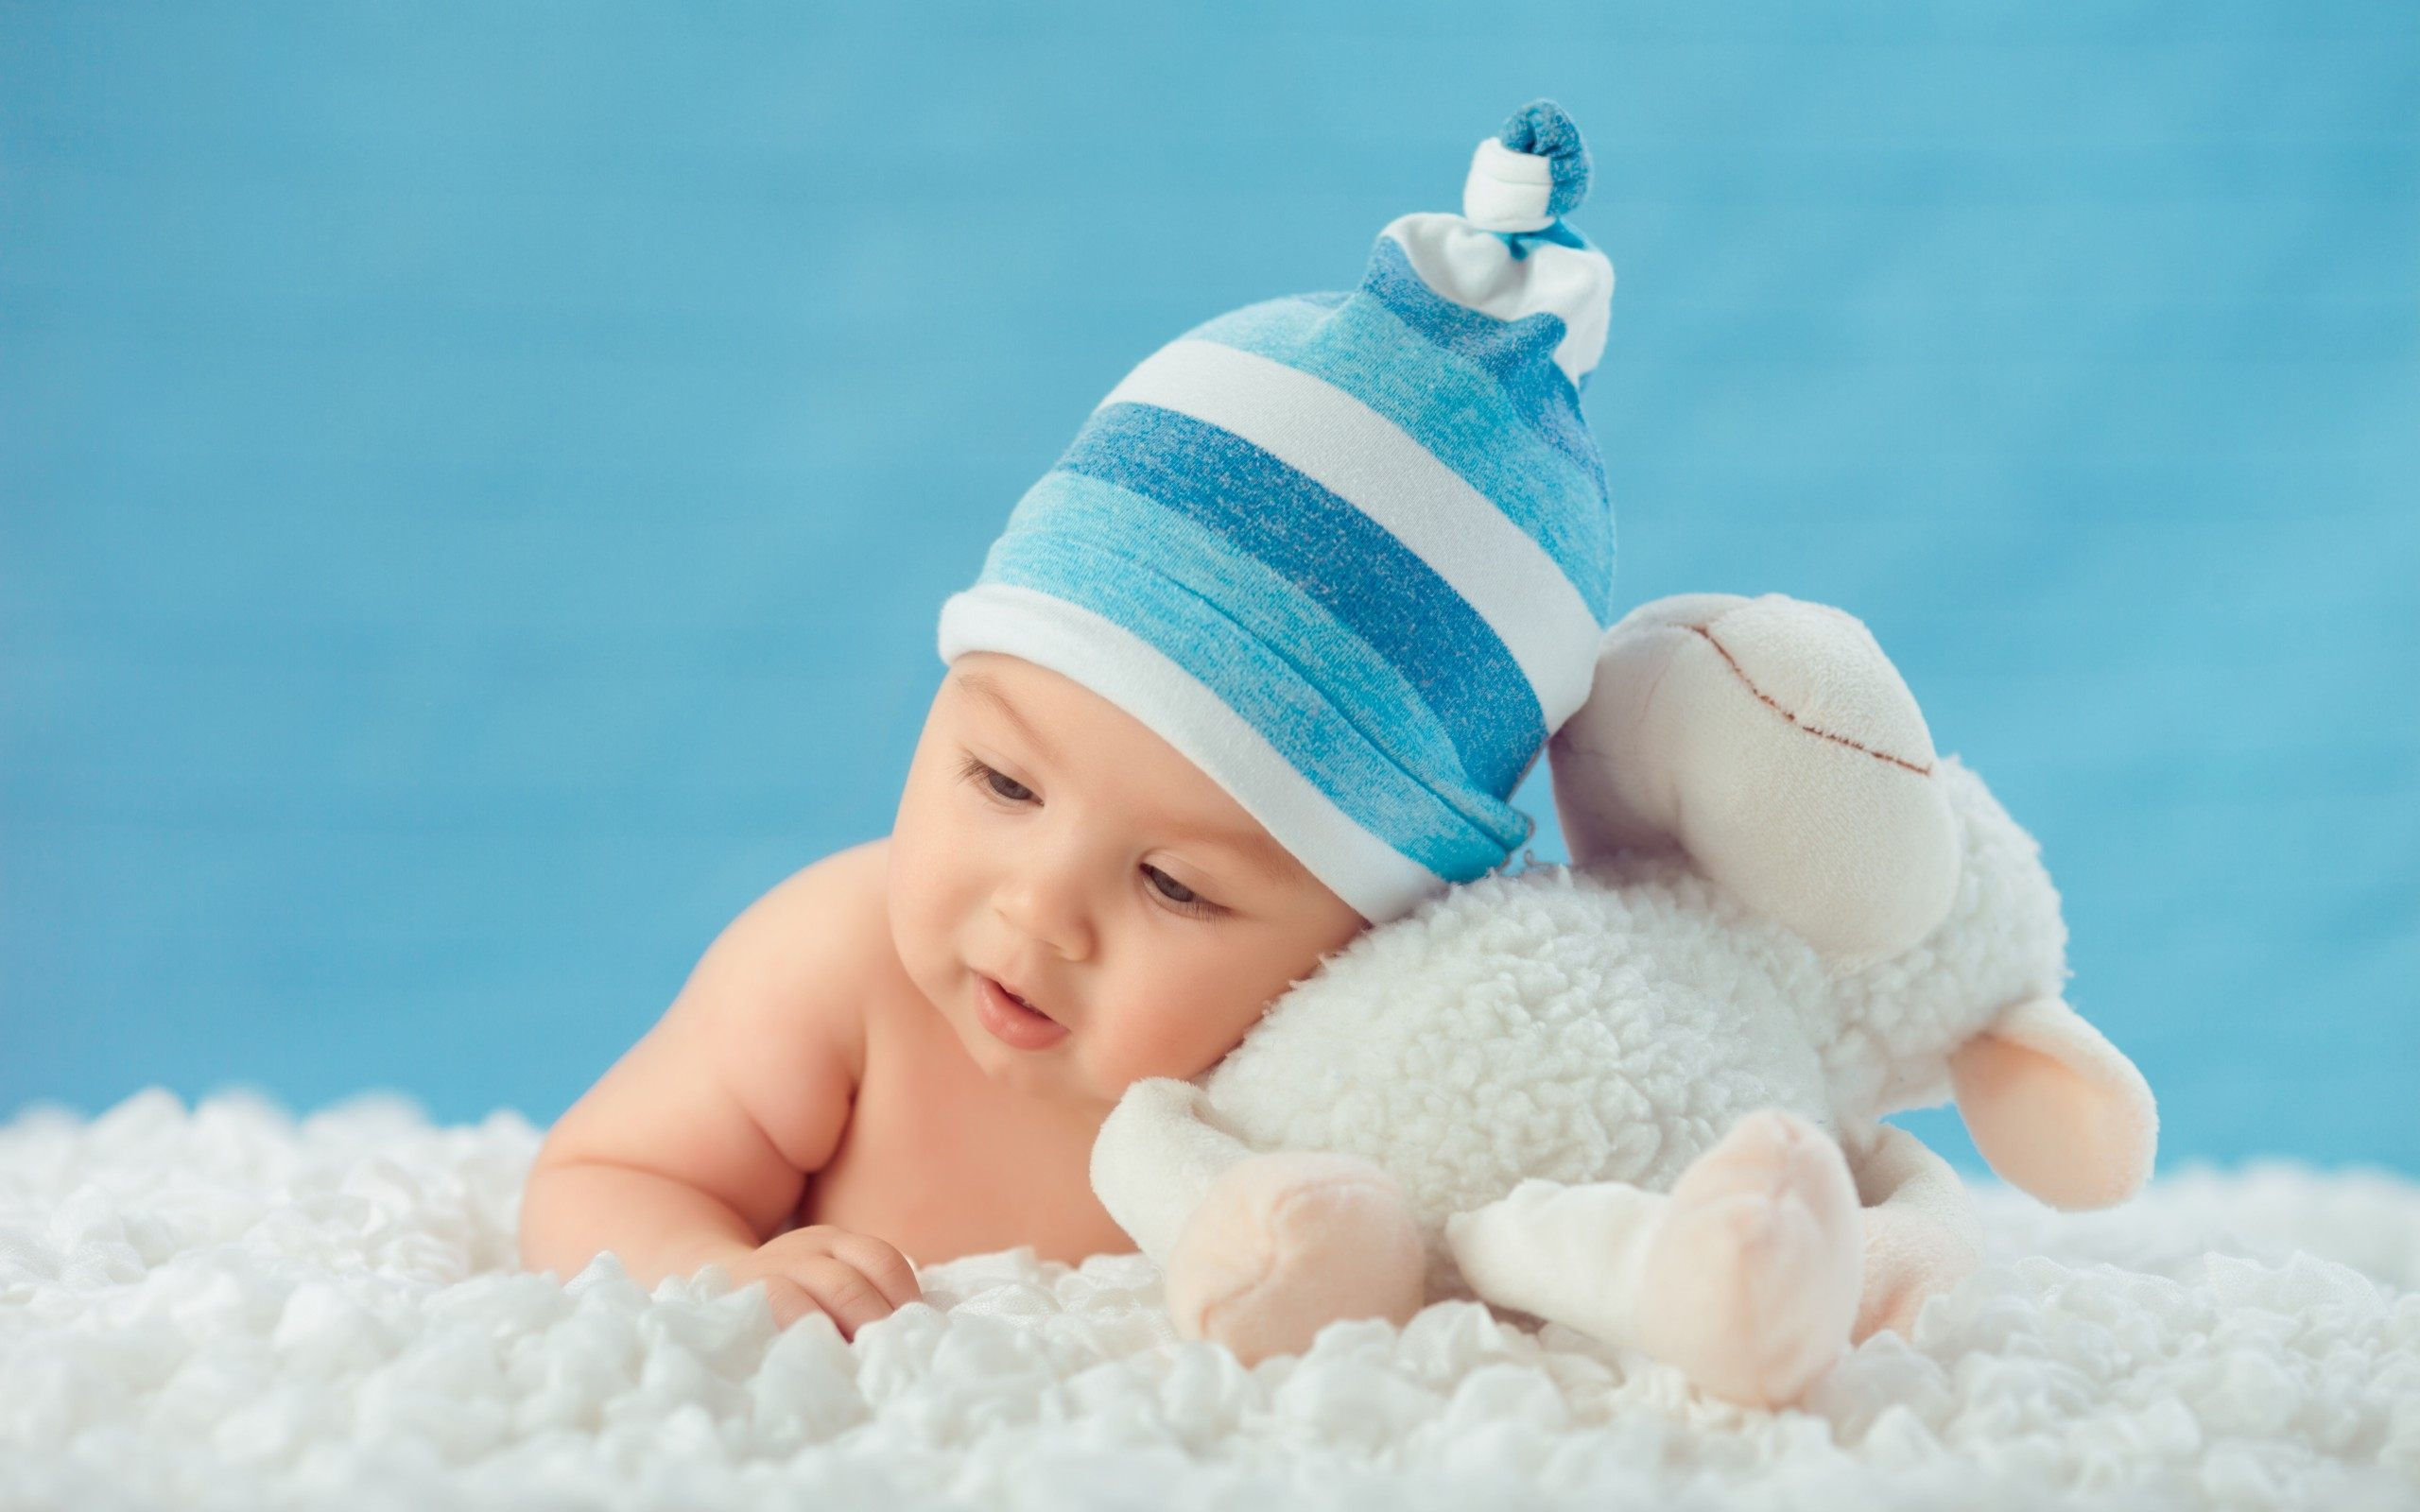 Love And Baby Wallpaper : Biggest collection Of HD Baby Wallpaper For Desktop And Mobile